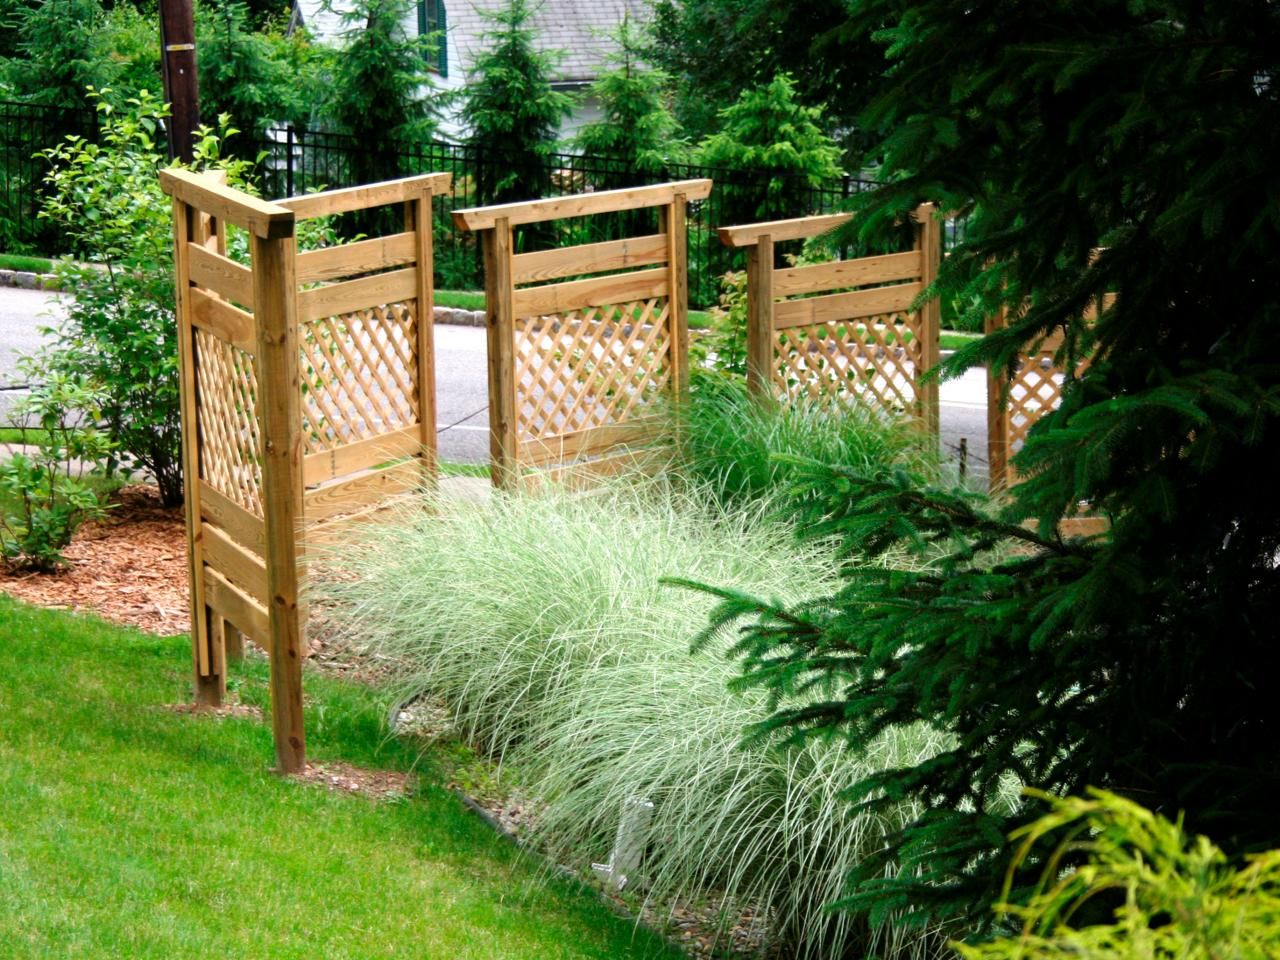 Build A Privacy Wall With Fence Panels | Landscaping Ideas And Hardscape  Design | HGTV